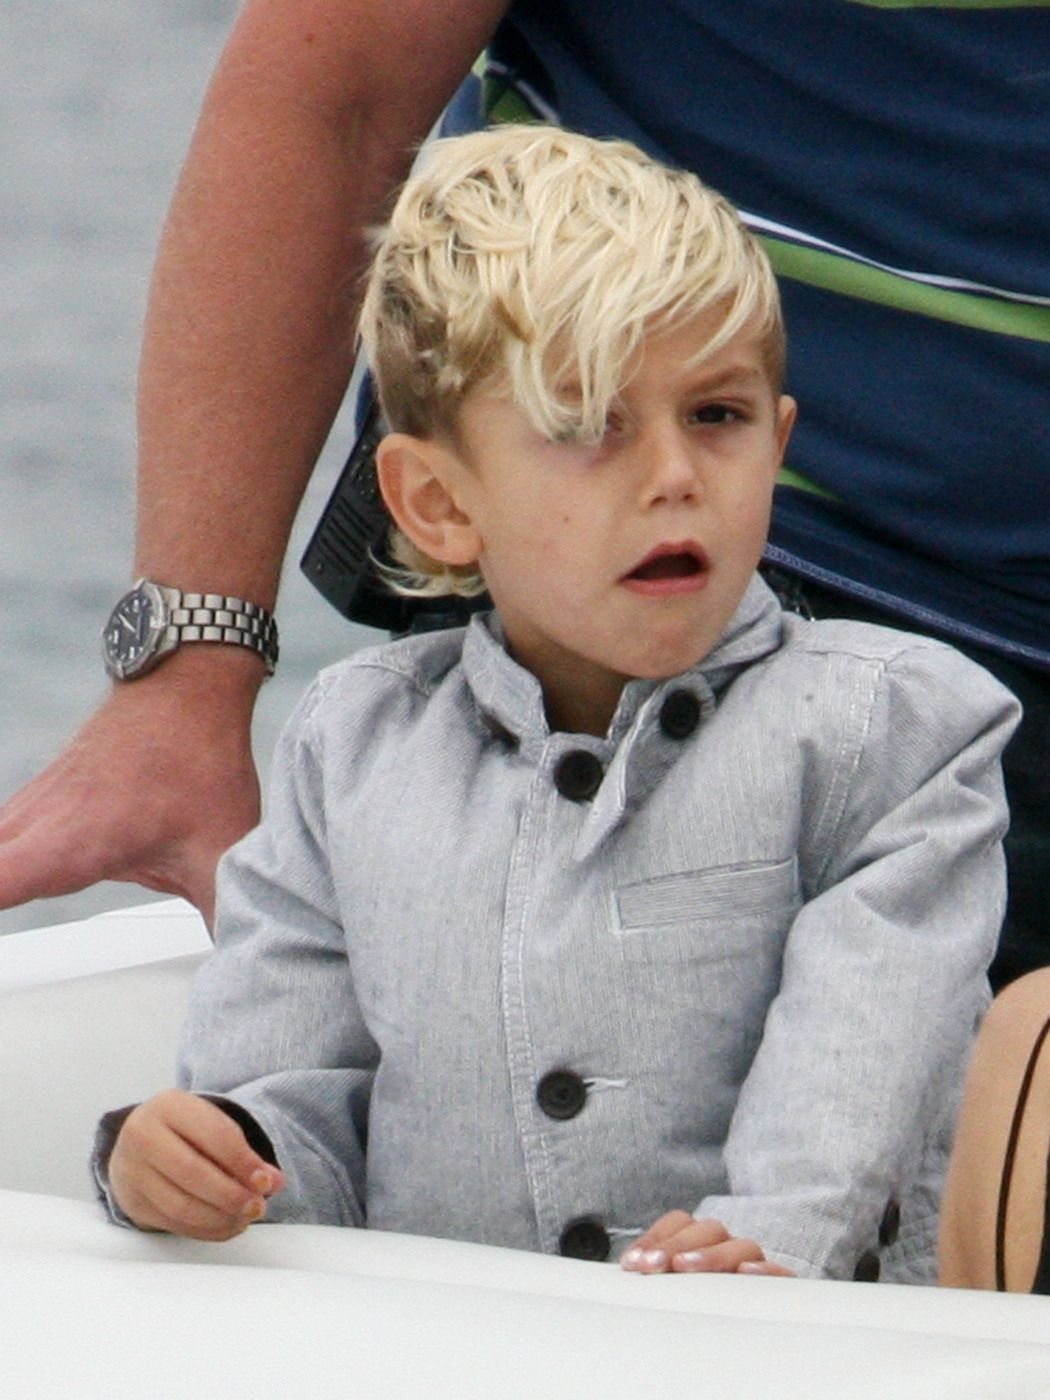 Boy hairstyle long on top  images about celebrity kids cuts on pinterest  kingston